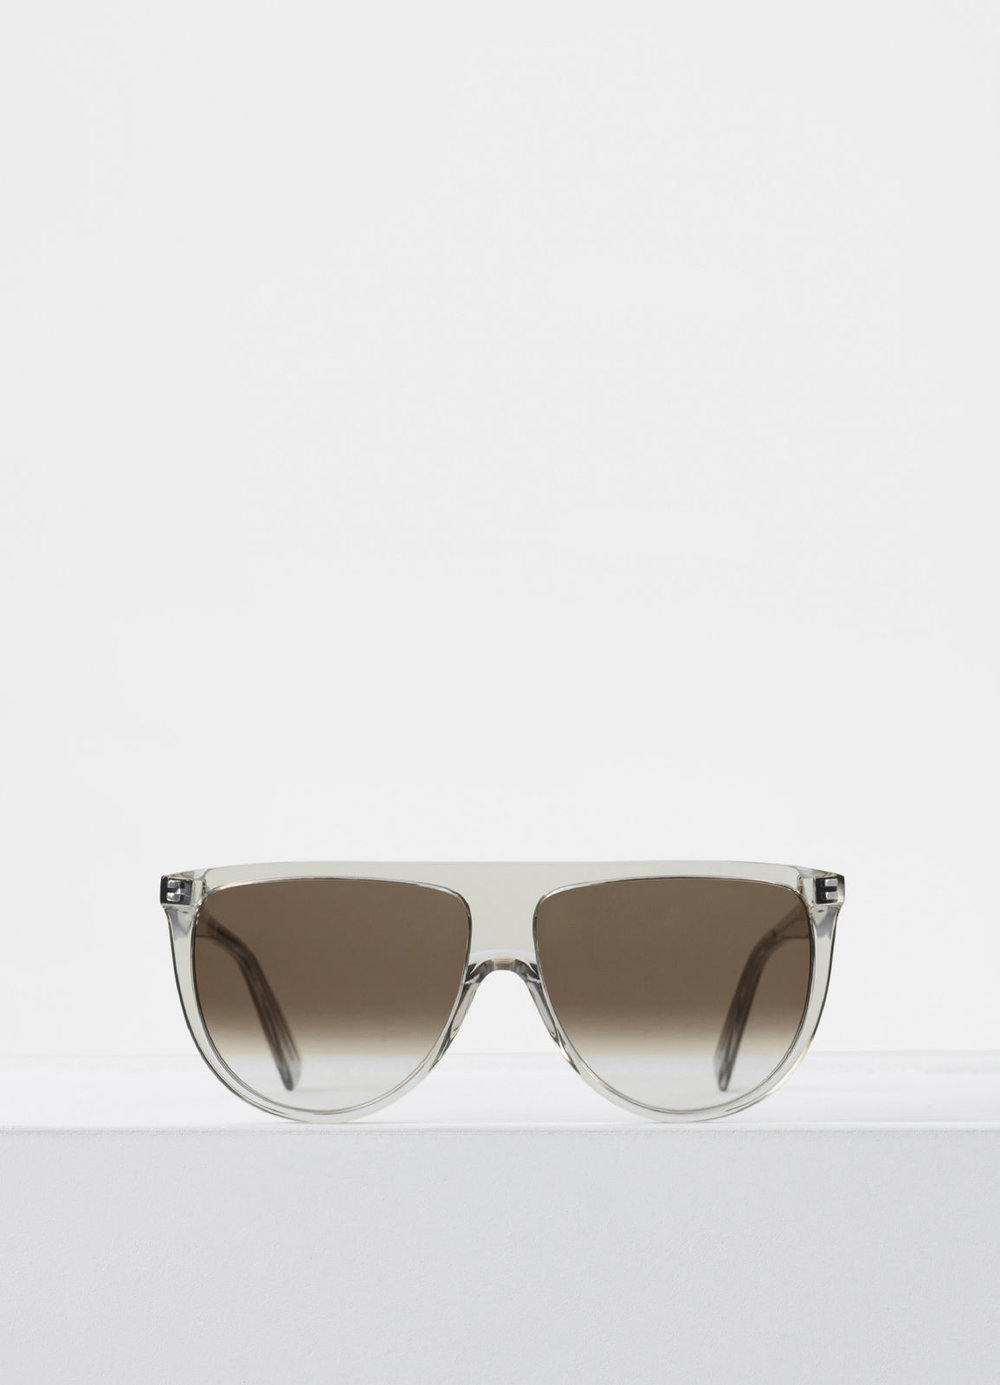 CELINE- CL40006I Sunglasses   £270   COLOUR:  Transparent   CATEGORY  SUN   MATERIAL  Acetate   SHAPE  Square